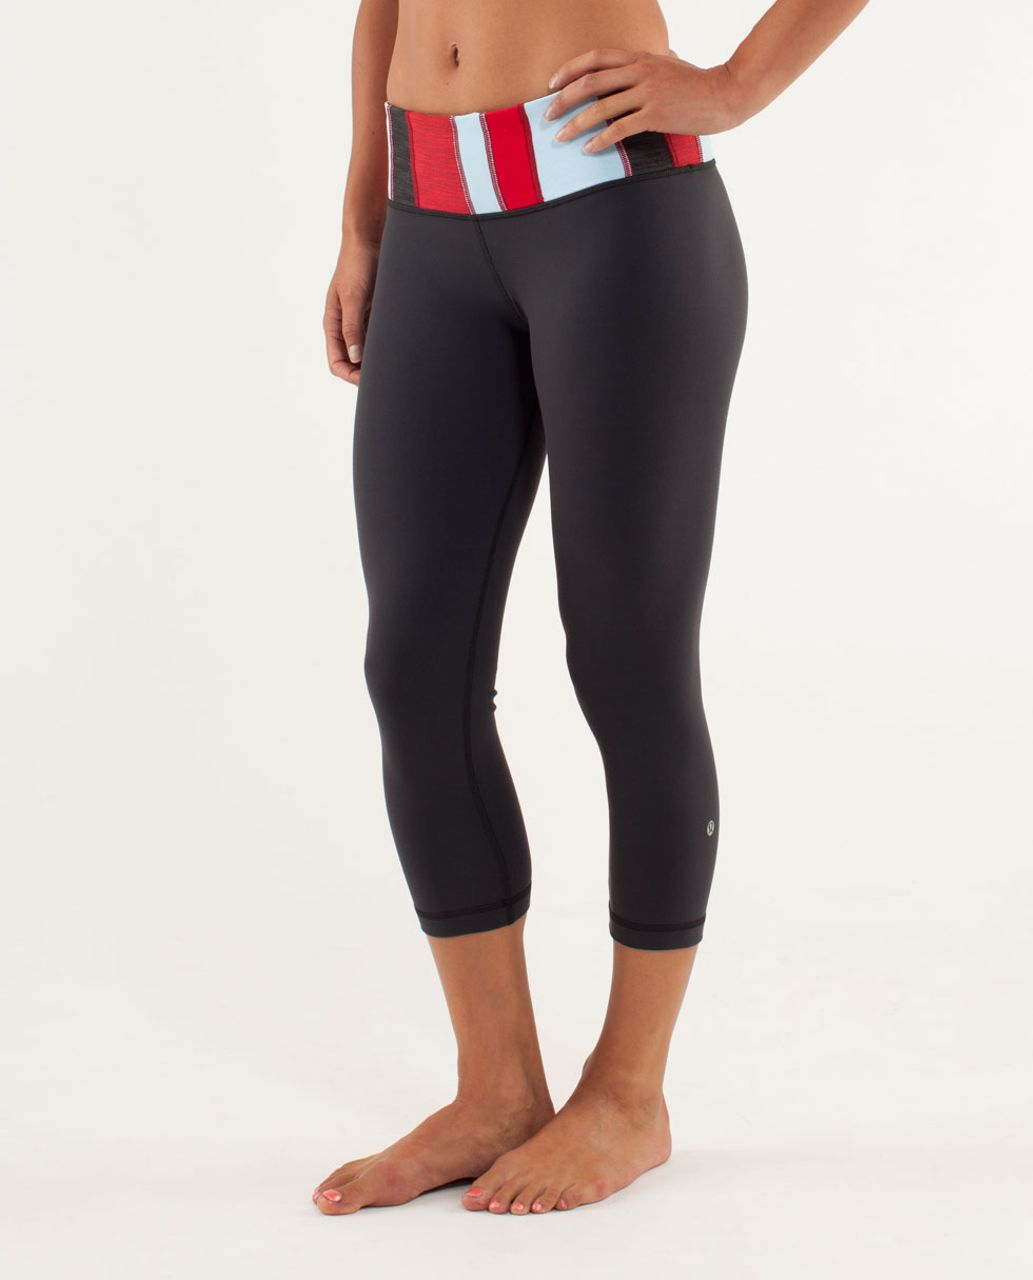 Lululemon Wunder Under Crop - Deep Coal / Fall 12 Quilt 11